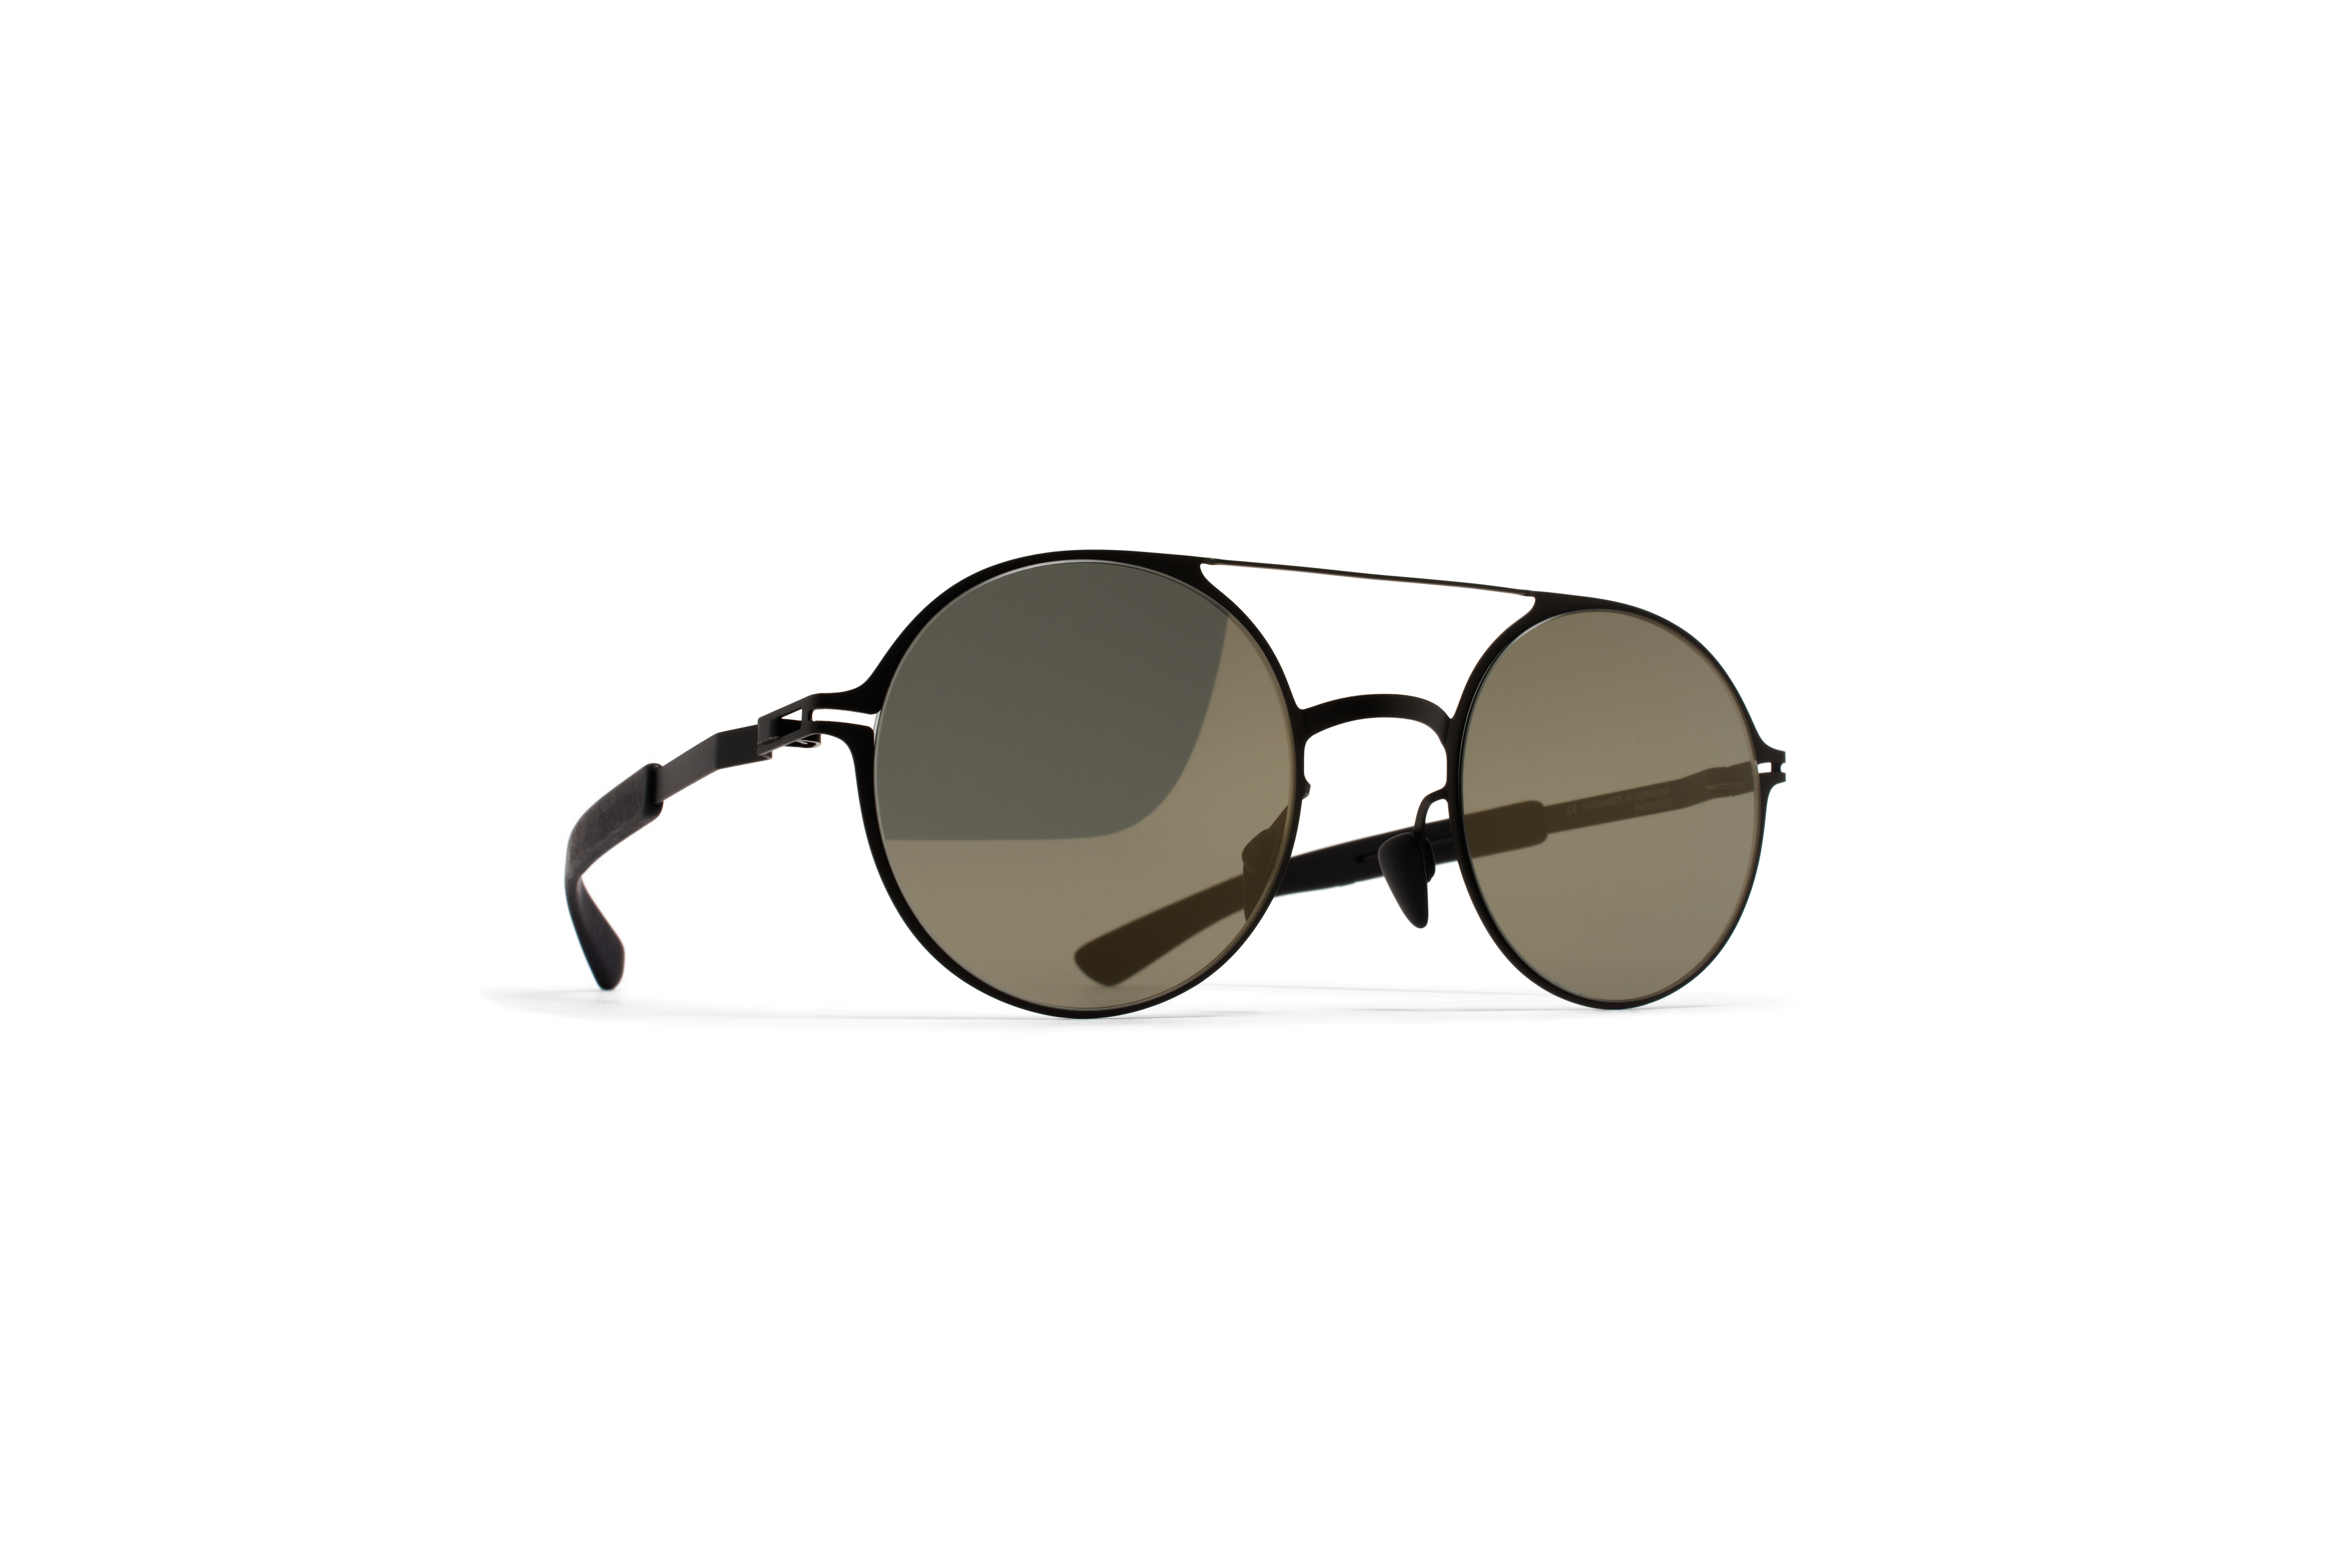 MYKITA Mylon Sun Lupine Mh1 Black Pitch Black Gunm